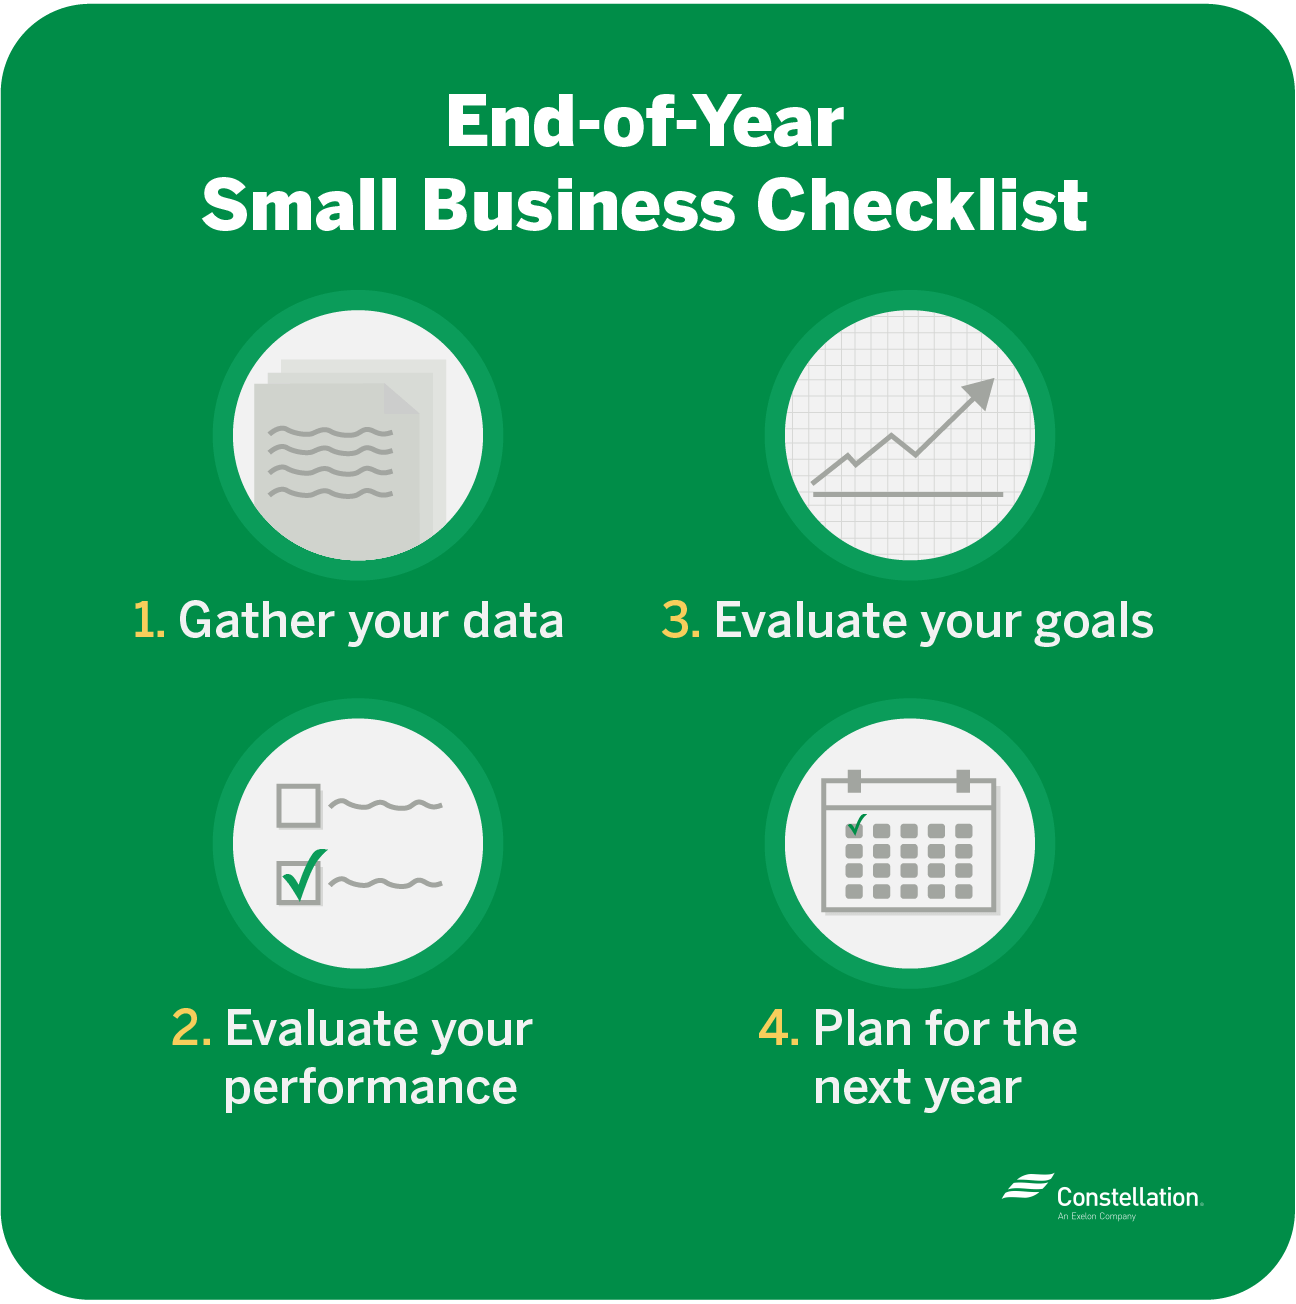 end-of-year small business planning